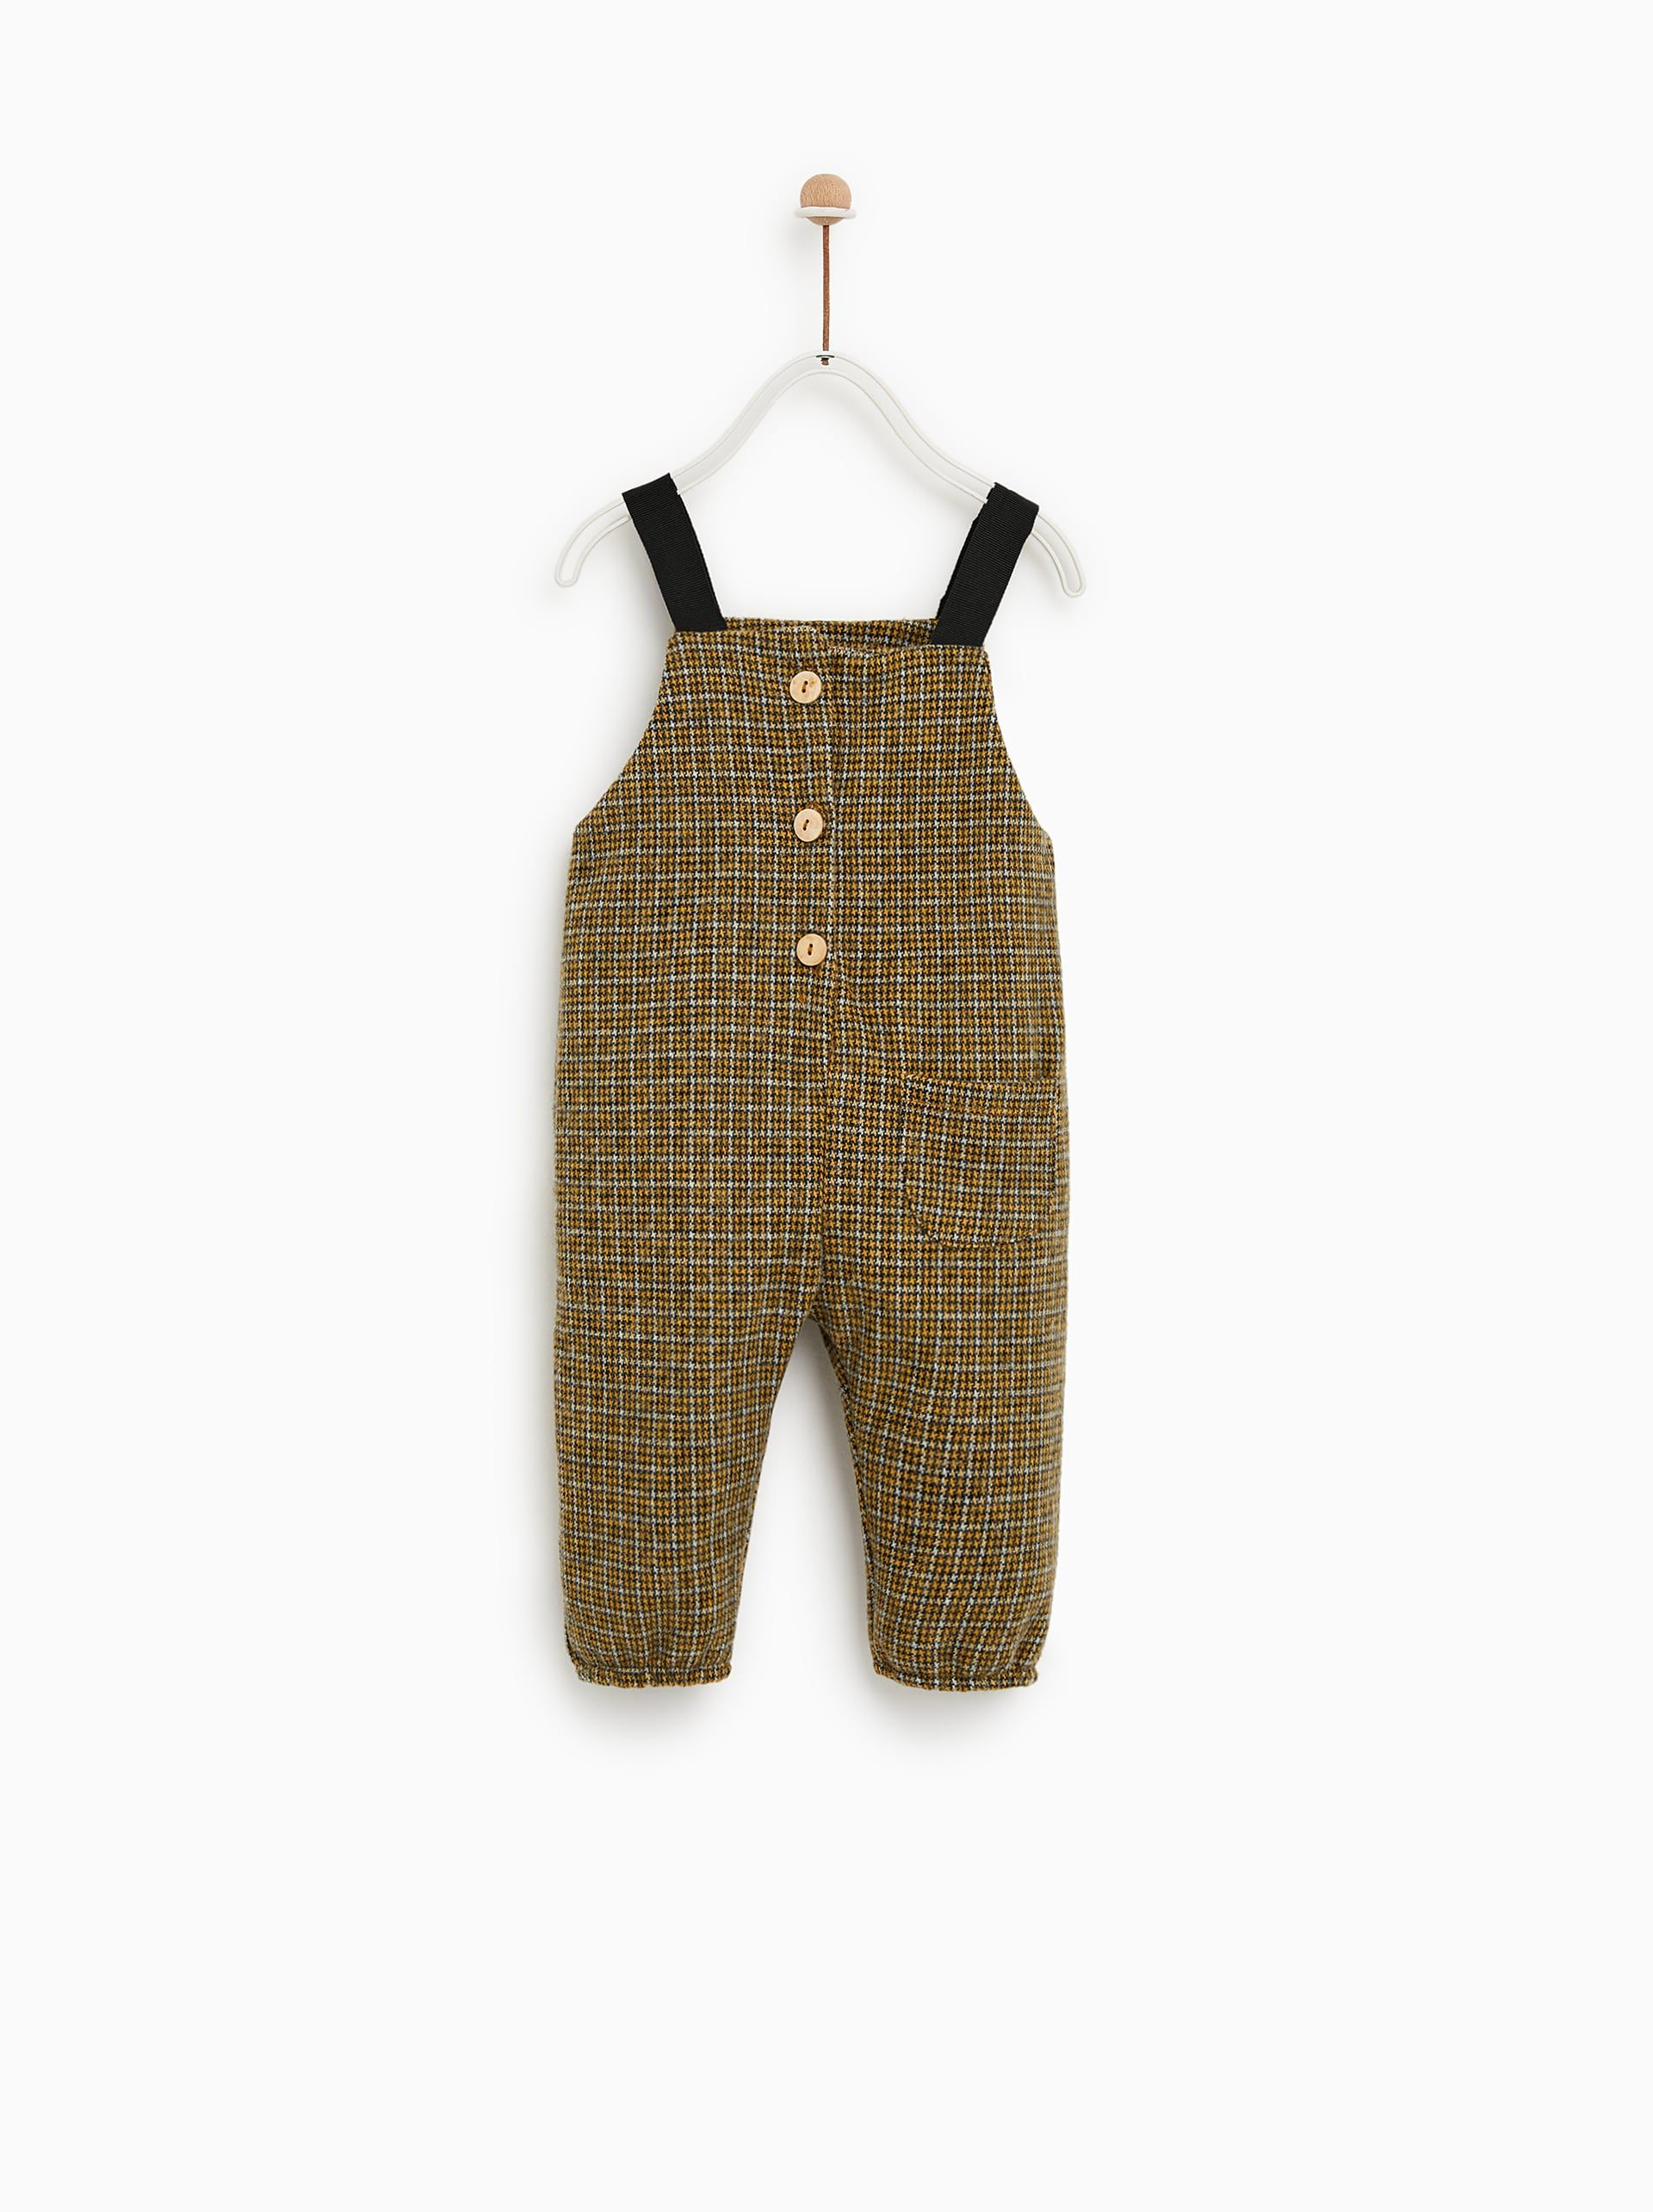 c1be1e7d1 Image 2 of TEXTURED WEAVE JUMPSUIT from Zara | Bebe Lou | Zara kids ...